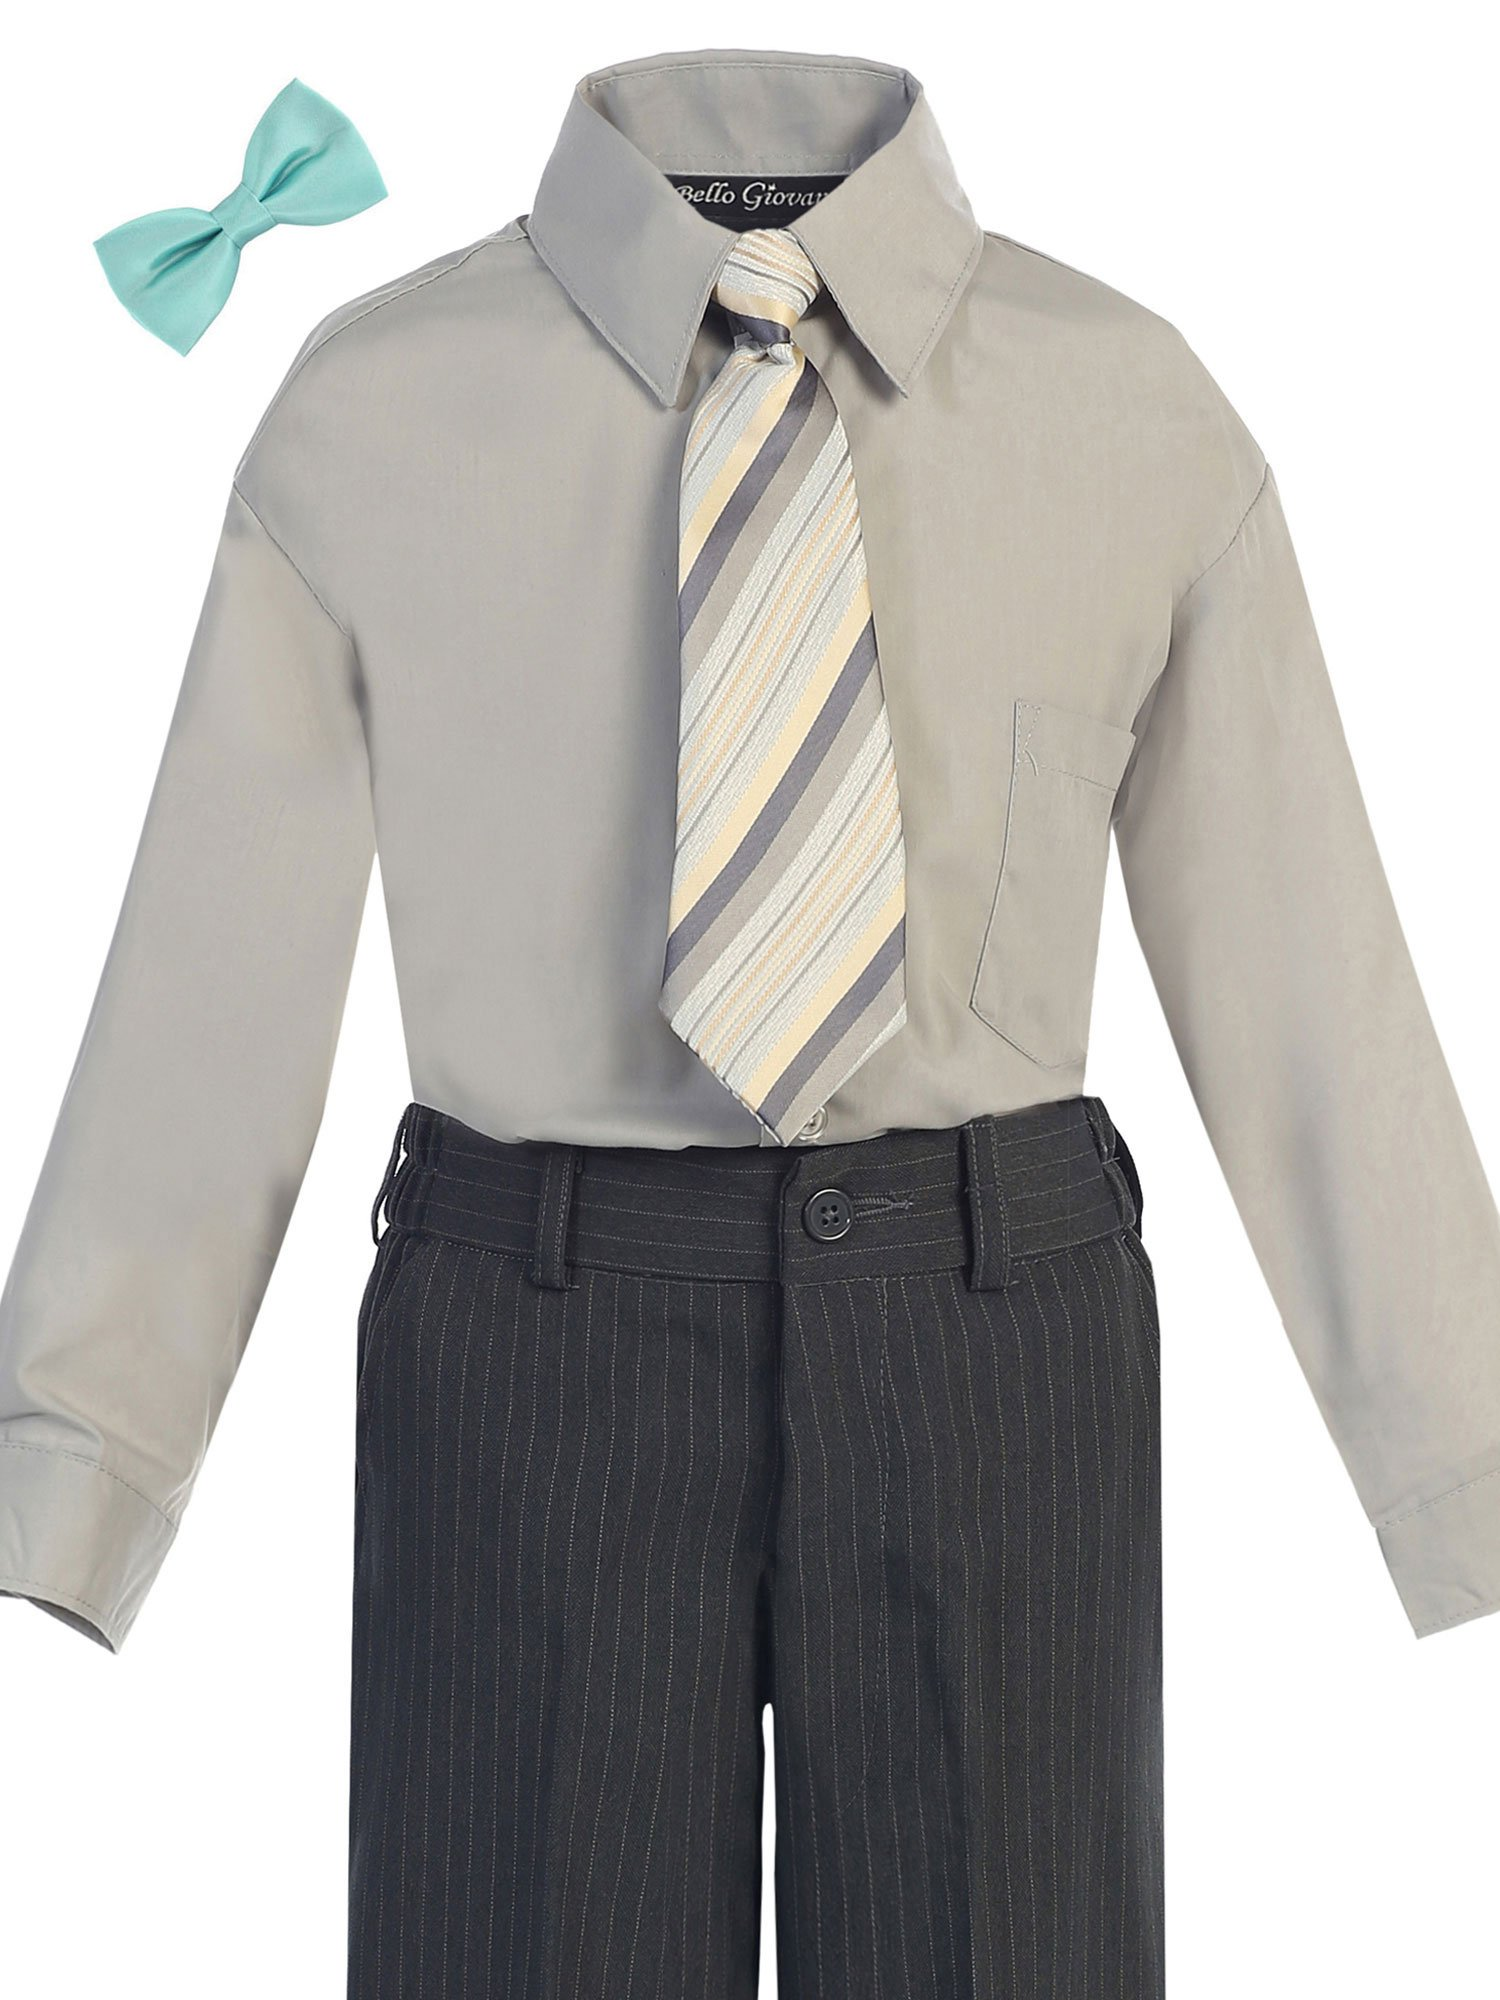 Bello Giovane Boys Silver Dress Shirt with Tie Set 2T-7 (Pick Free Bow Tie) (3T, Tiffany Blue) by Bello Giovane